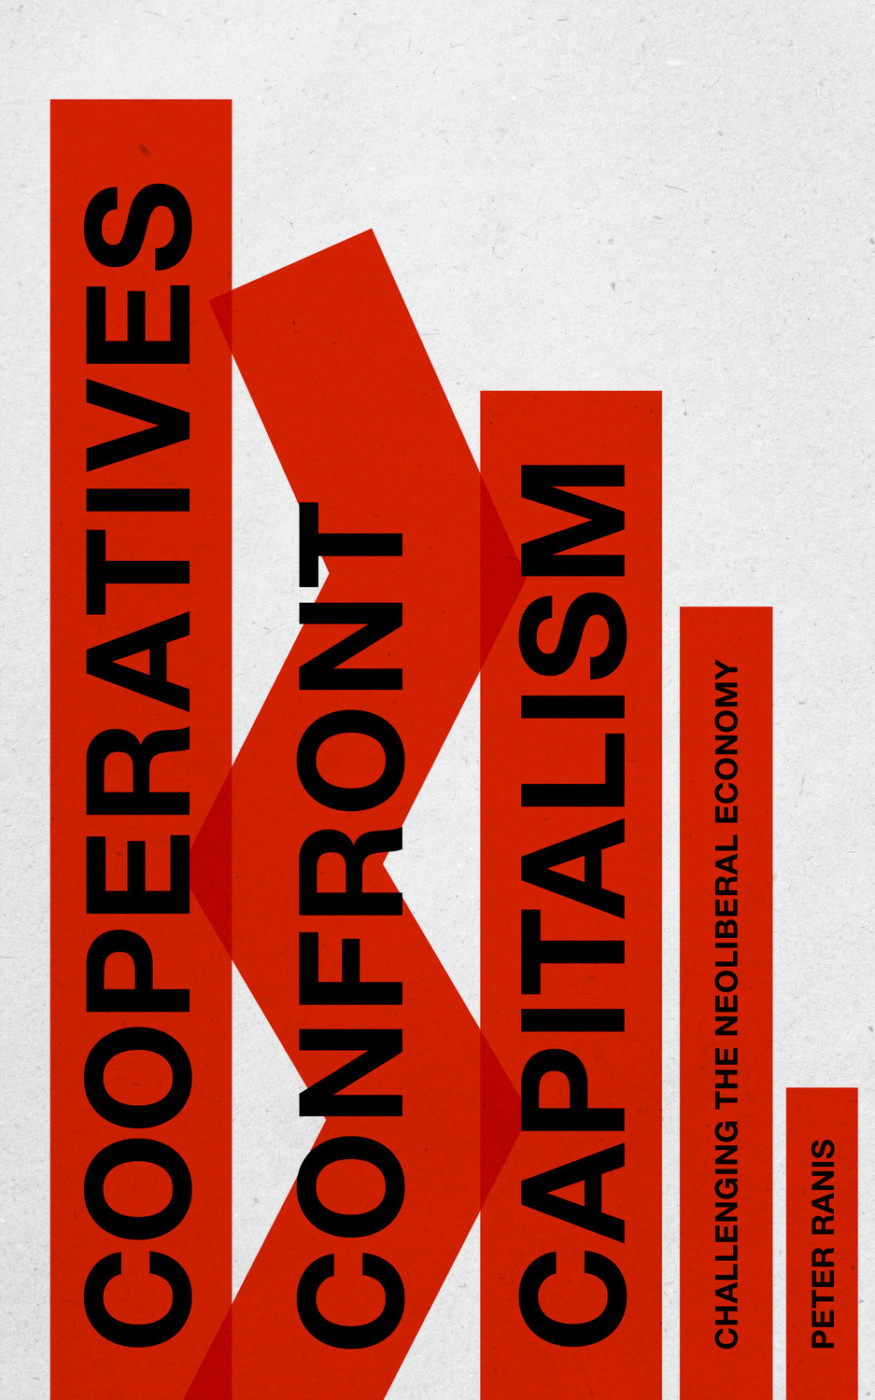 essays of capitalism Capitalism vs communism essayscapitalism and communism are two entirely diverse economic systems capitalism is an economic system characterized by.